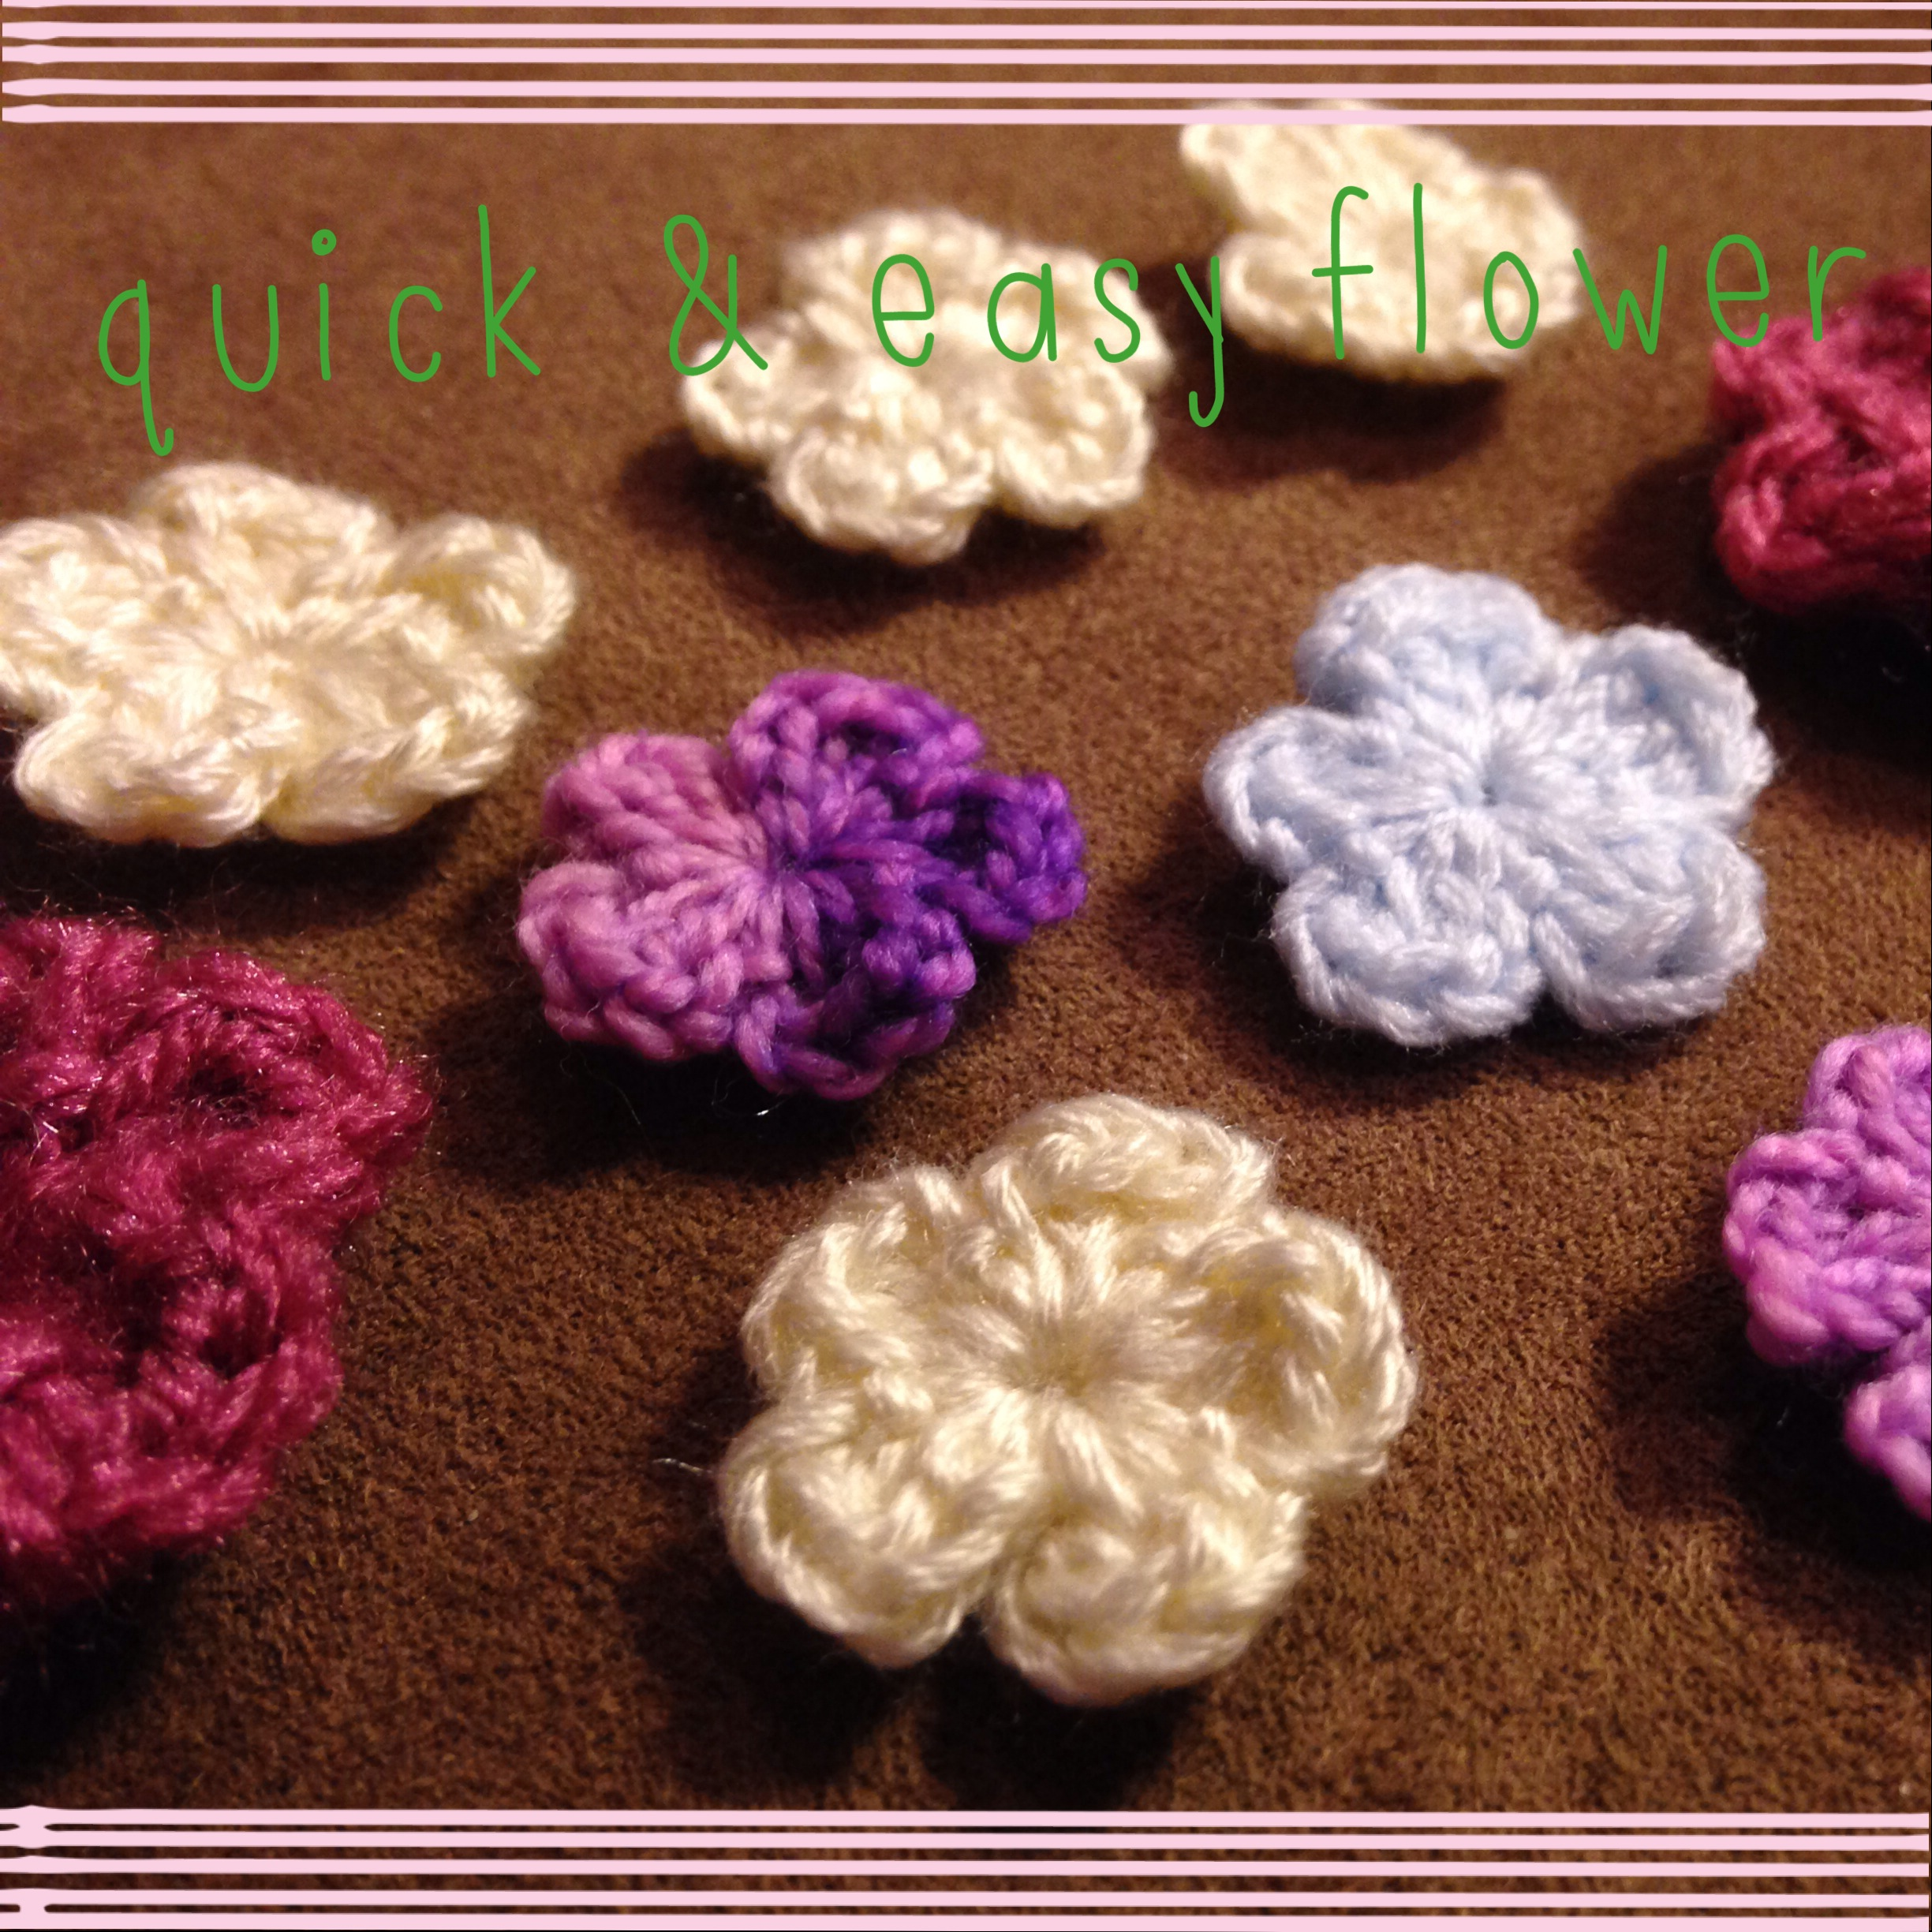 Quick Crochet Flower Pattern : Pattern: Quick and Easy 5 or 6 Petal Flower ...somewhere ...